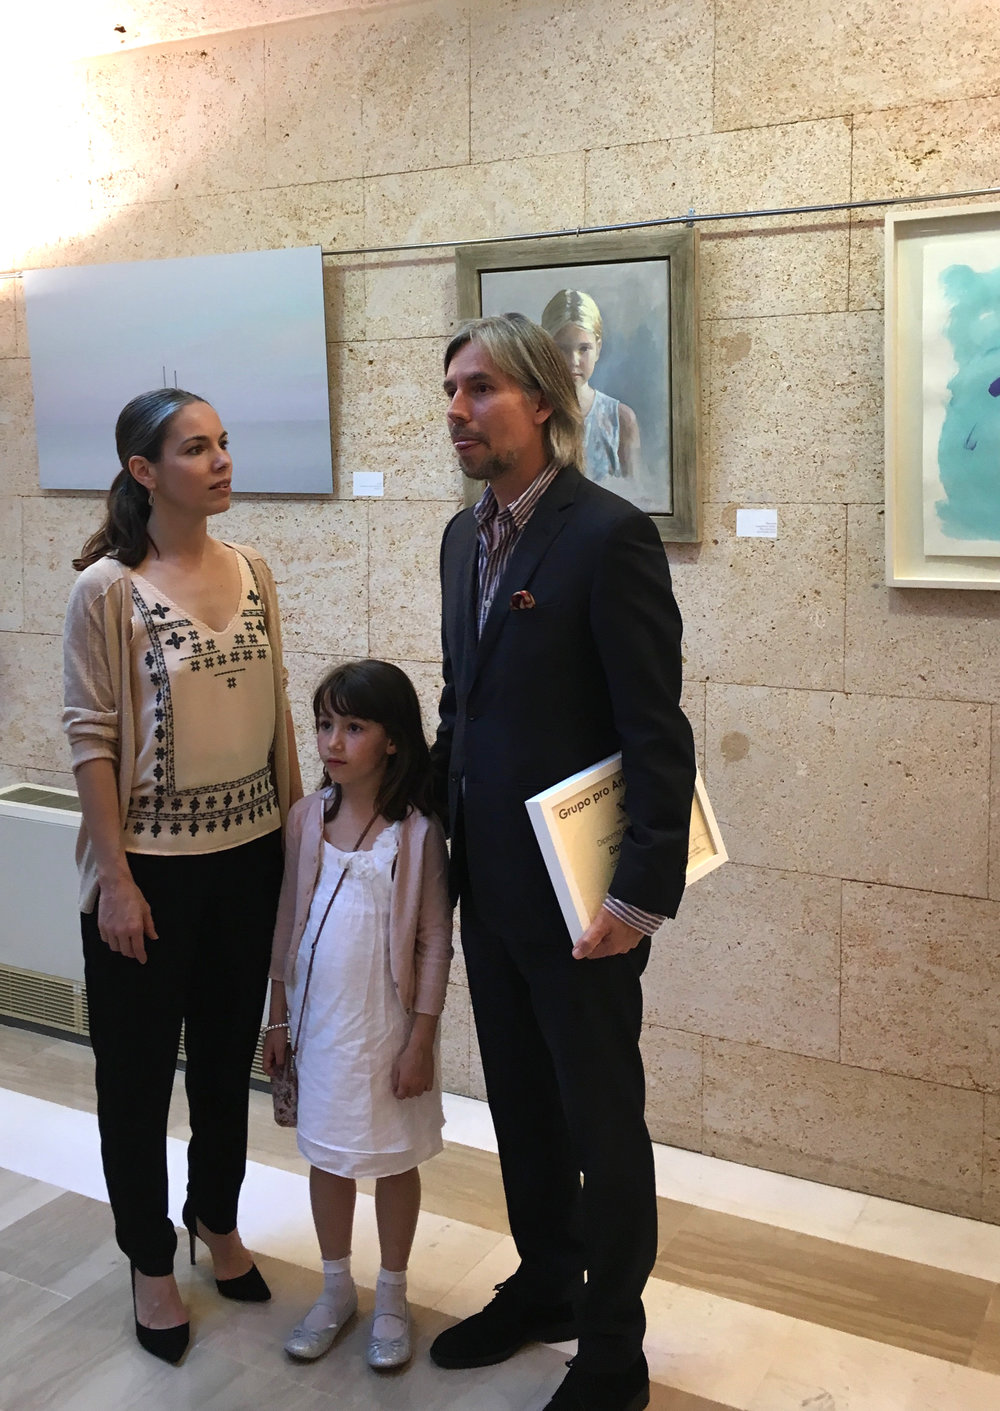 PortraitistJose Maria Fayos with his family at the opening reception